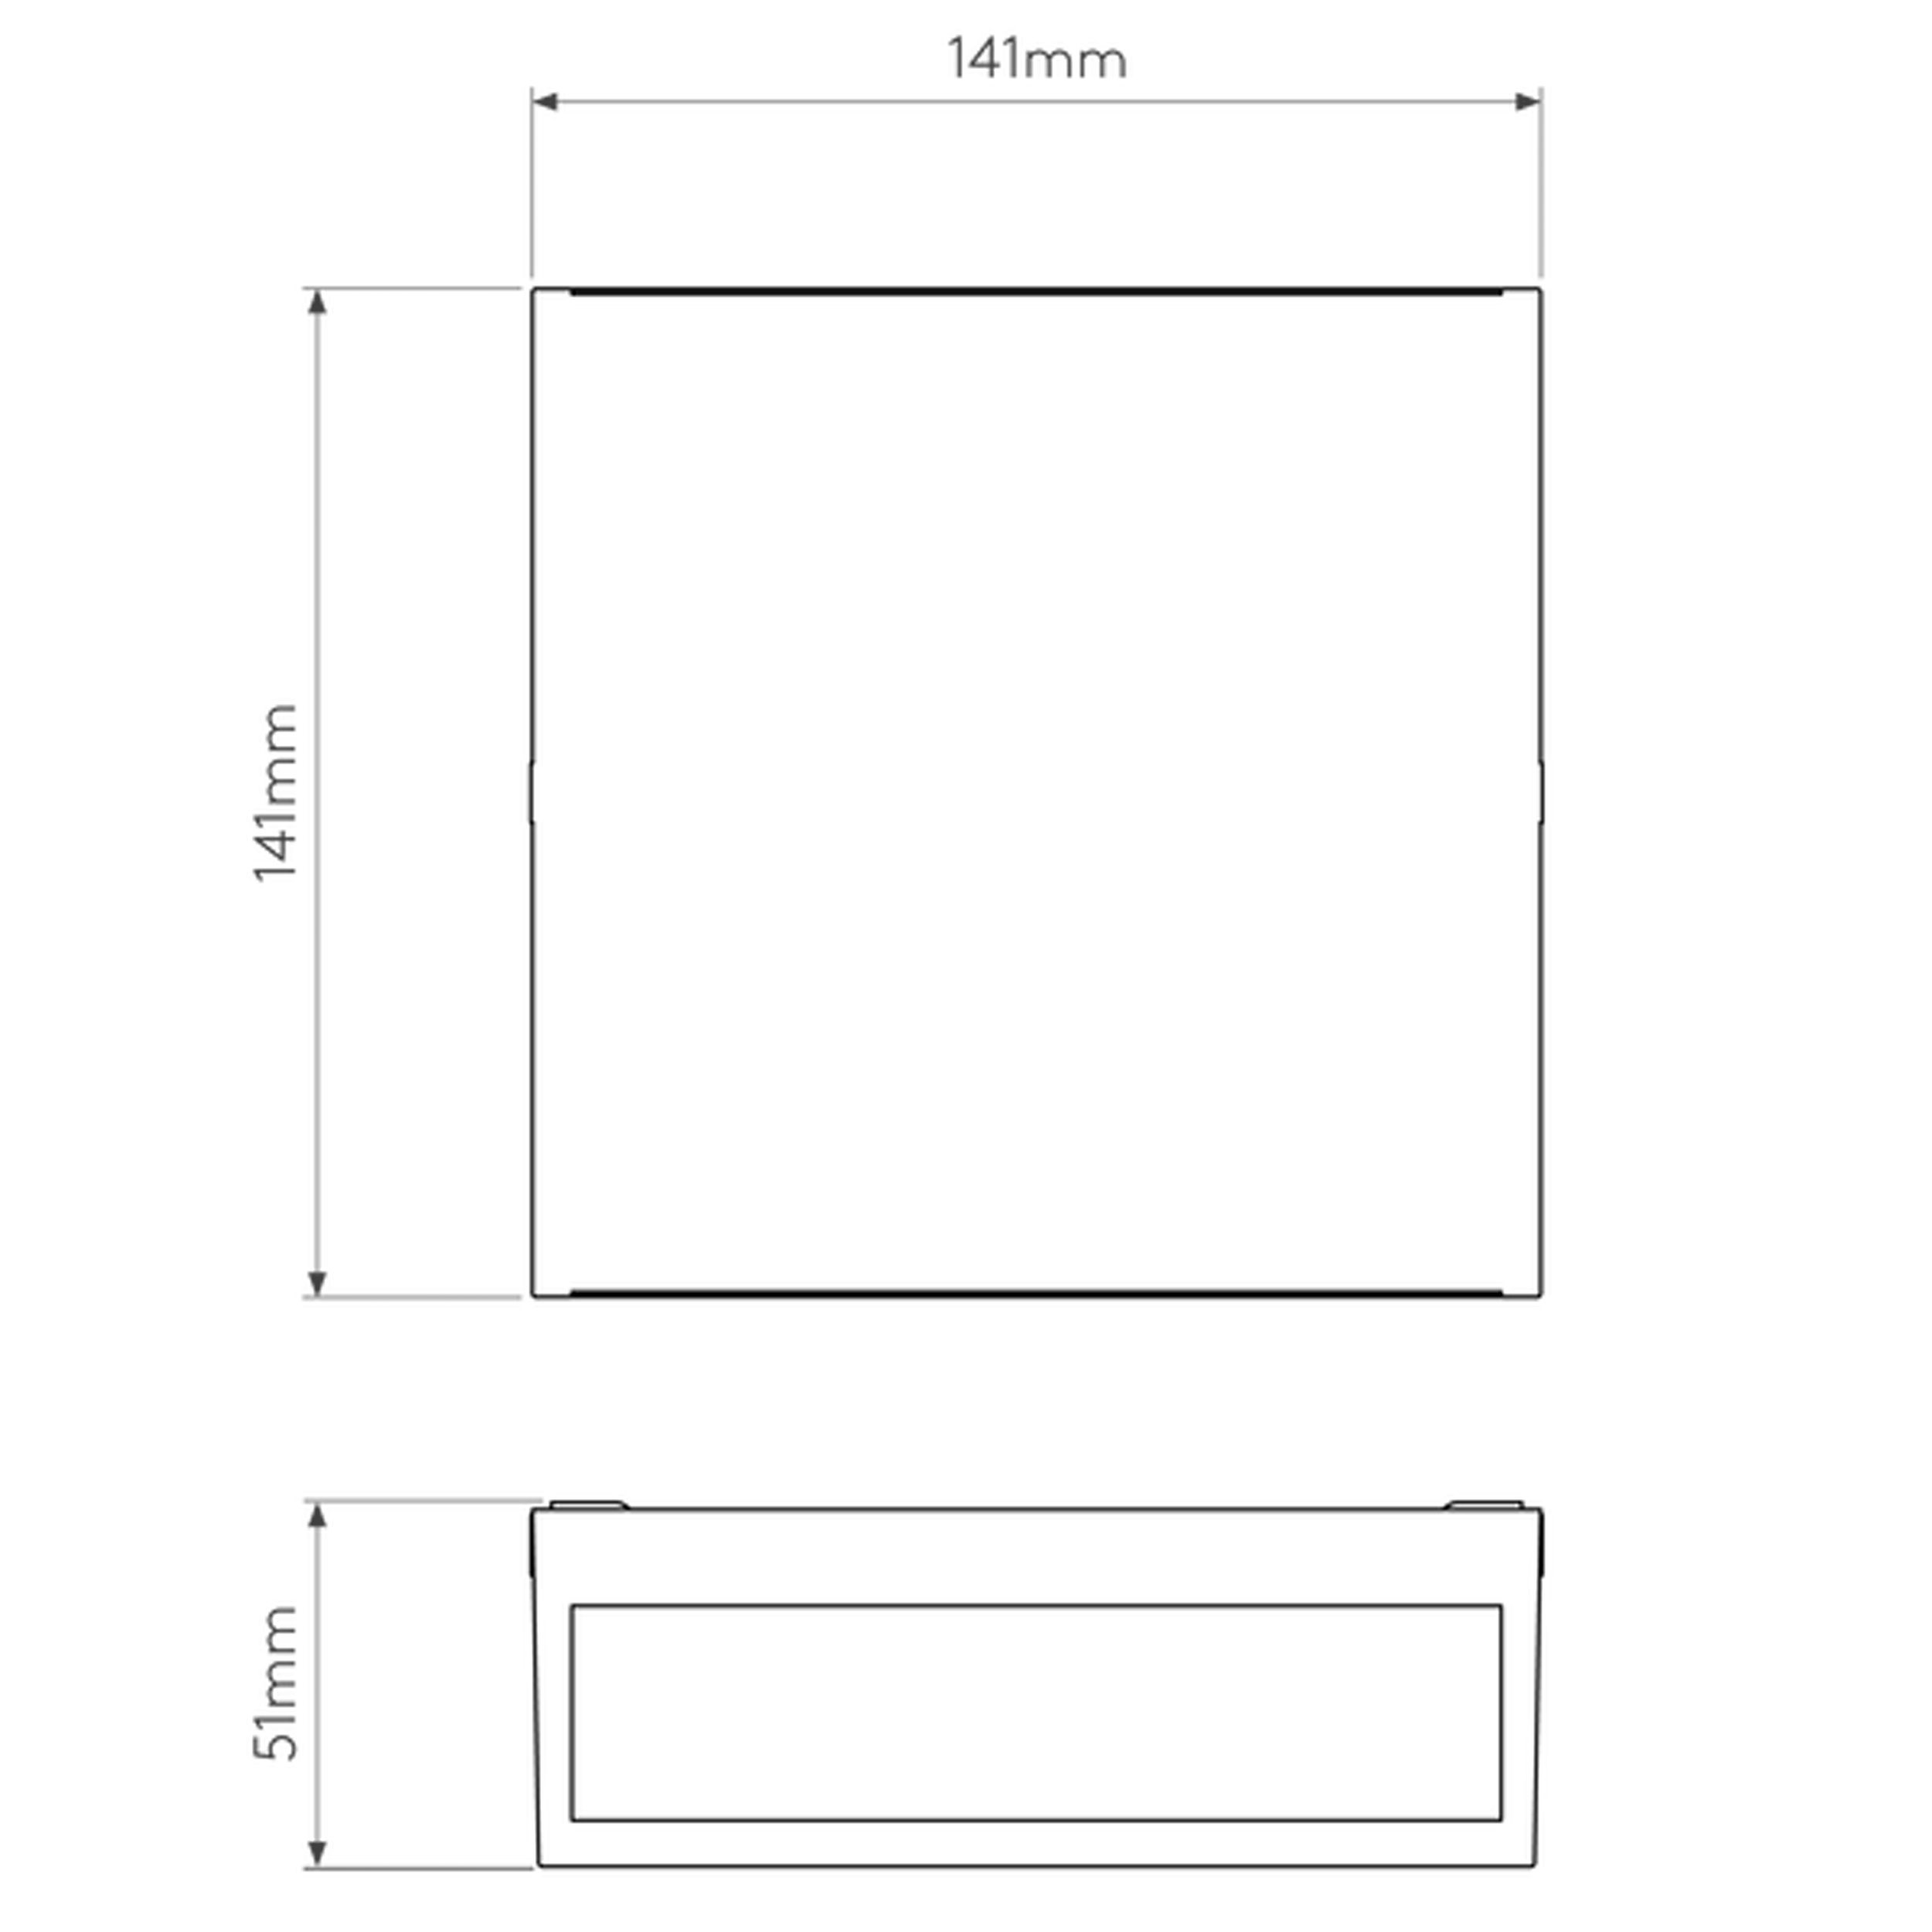 Astro Elis Twin Led Wall Light Line Drawing